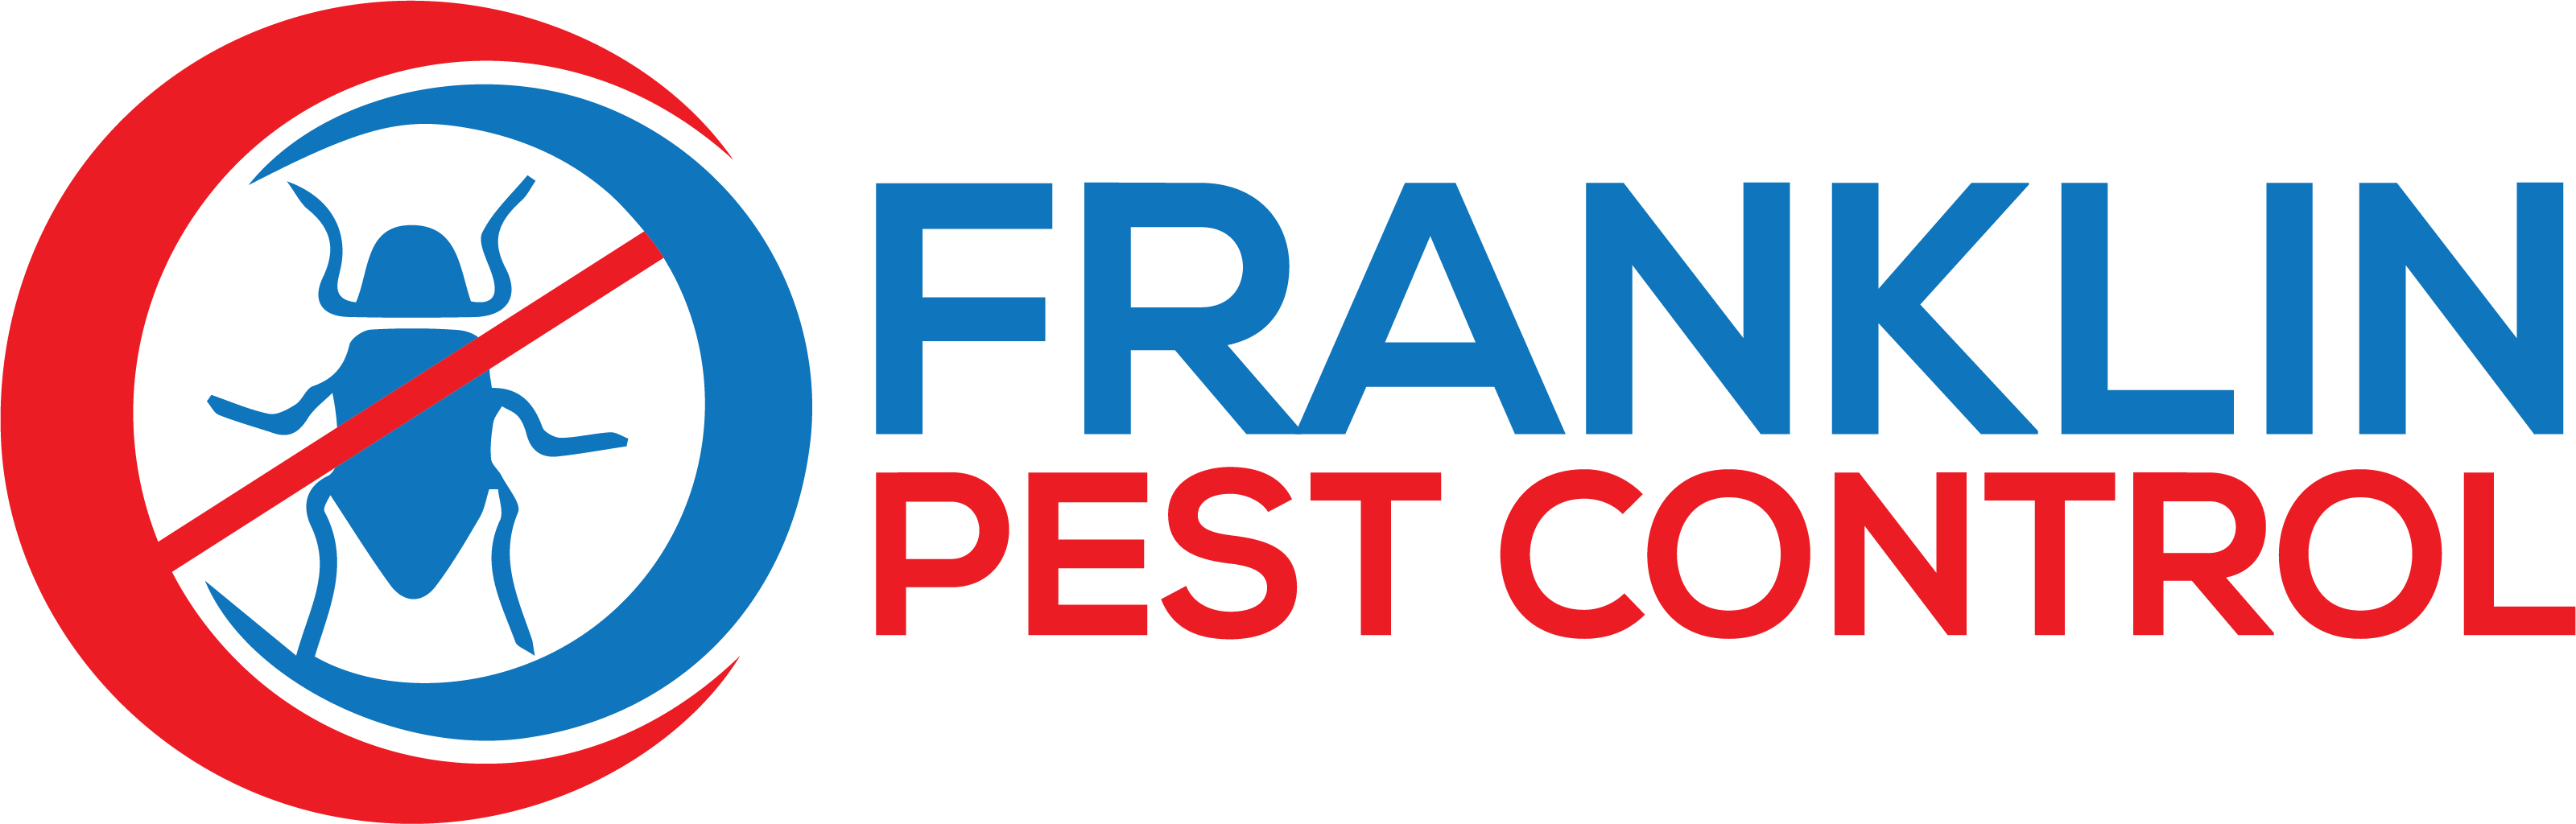 Franklin Pest Control Helps Keep Homes Bug Free All Summer With Superior Franklin Tn Pest Management Solutions